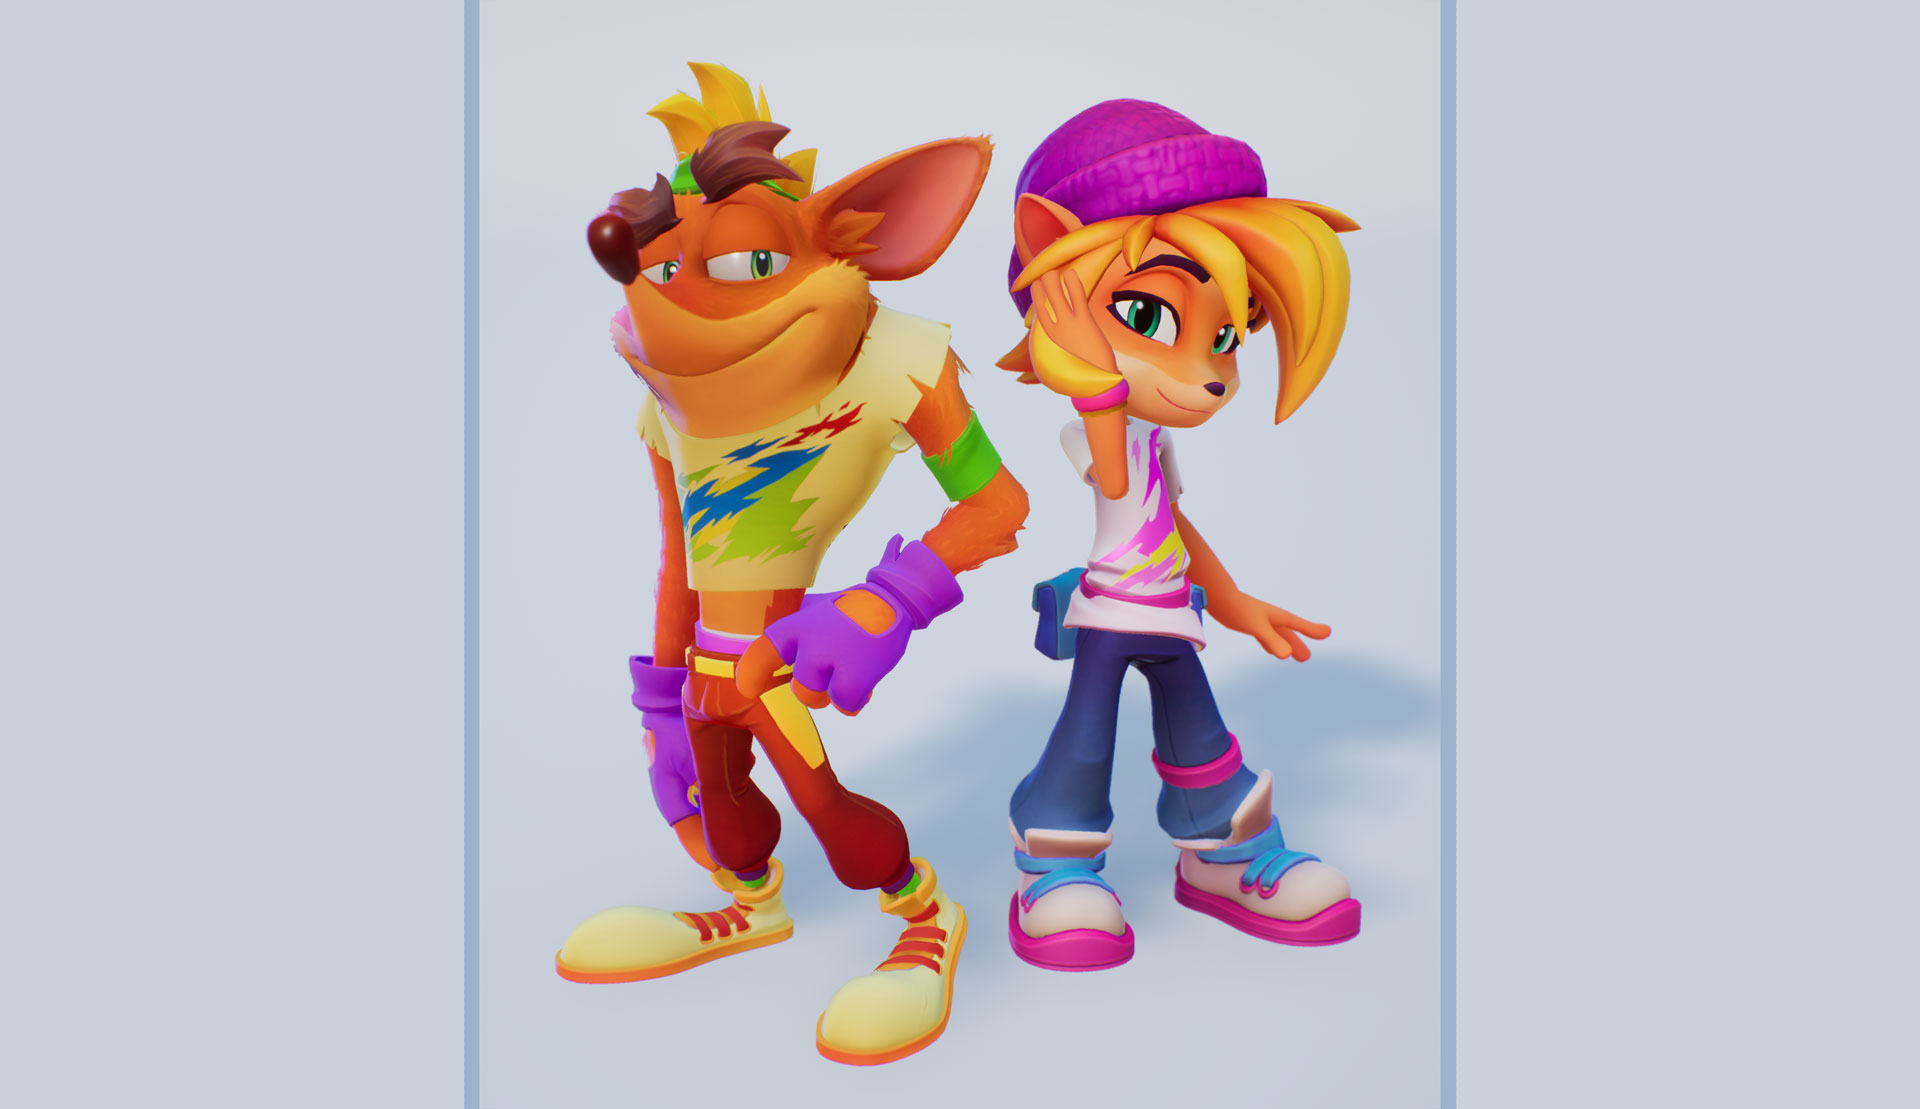 Just N.Time for Fall – Crash Bandicoot™ 4: It's About Time - Image 8